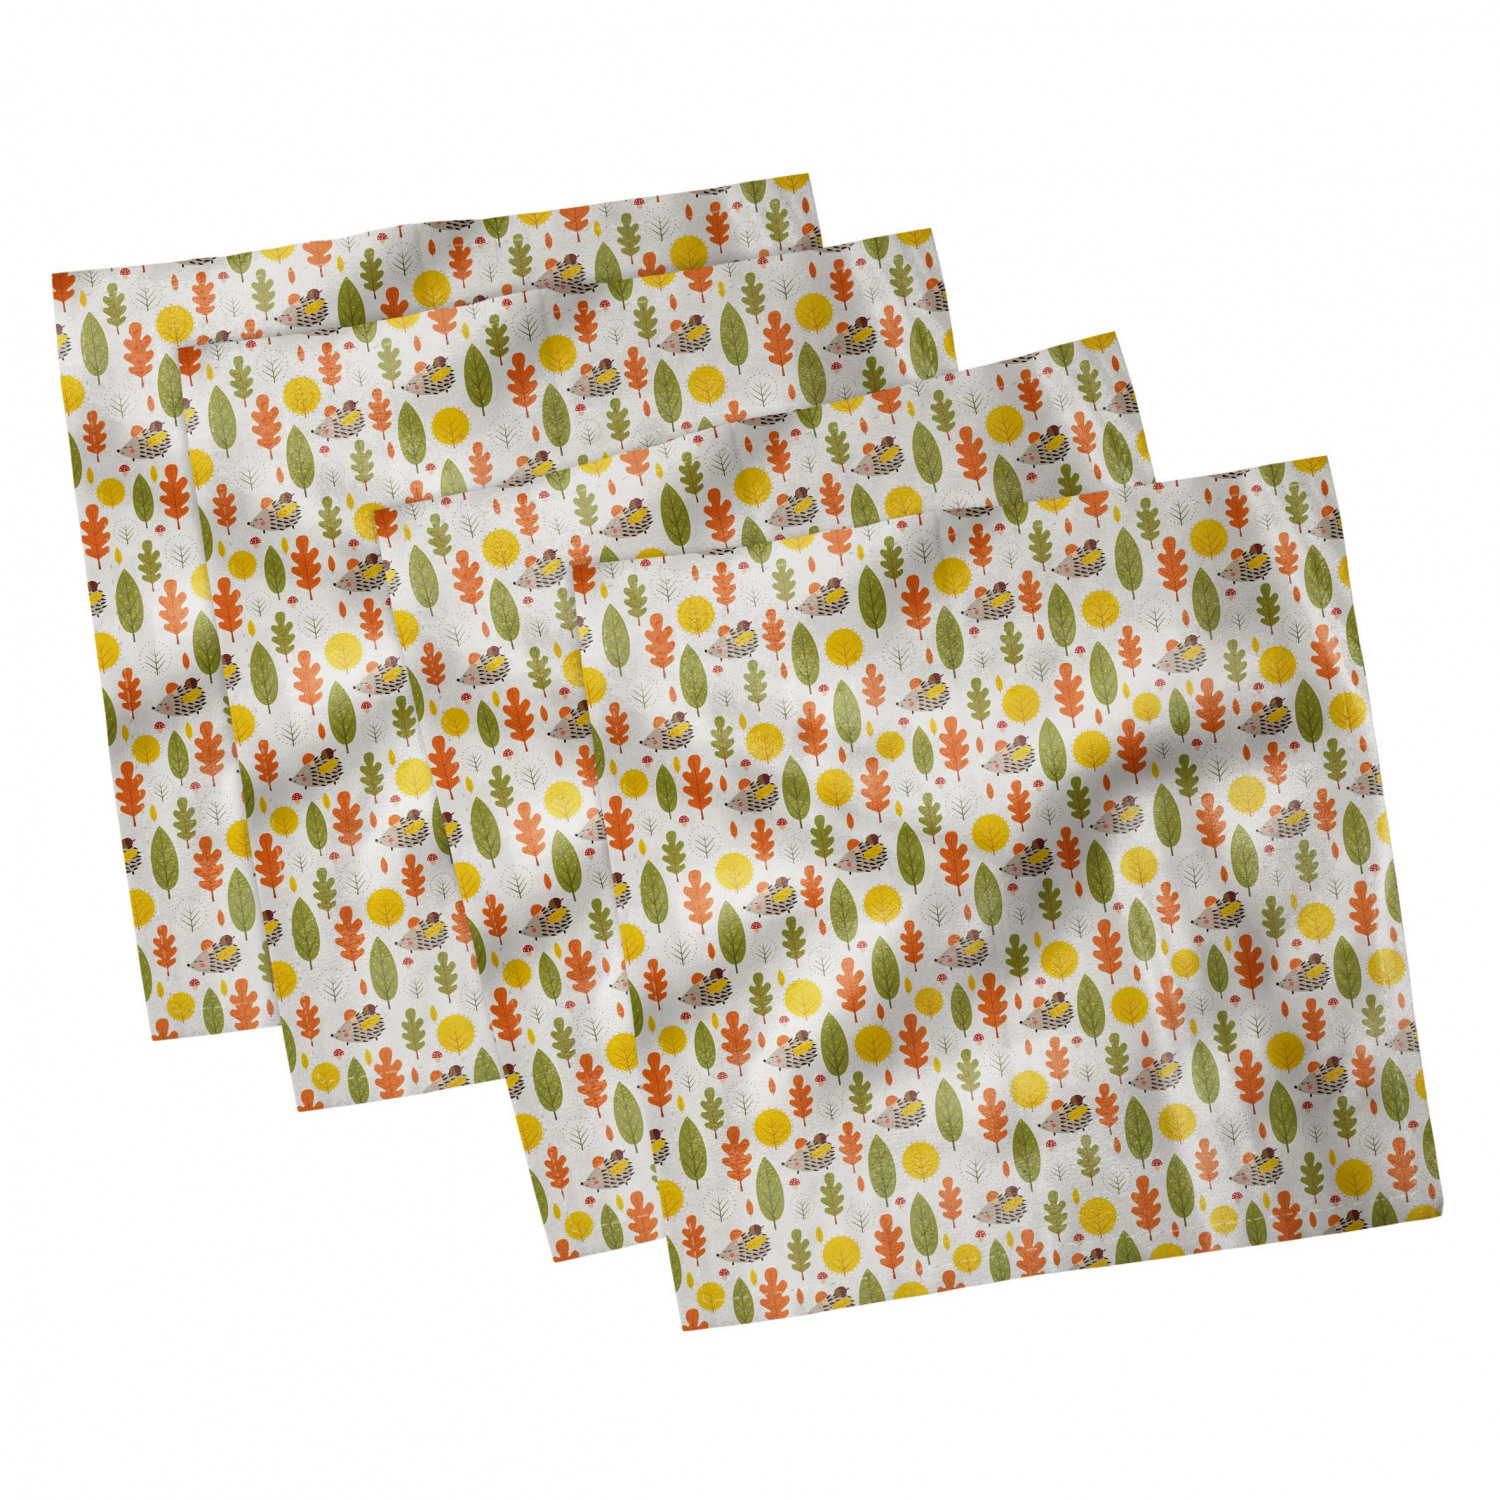 thumbnail 9 - Ambesonne-Autumn-Fall-Decorative-Satin-Napkins-Set-of-4-Party-Dinner-Fabric